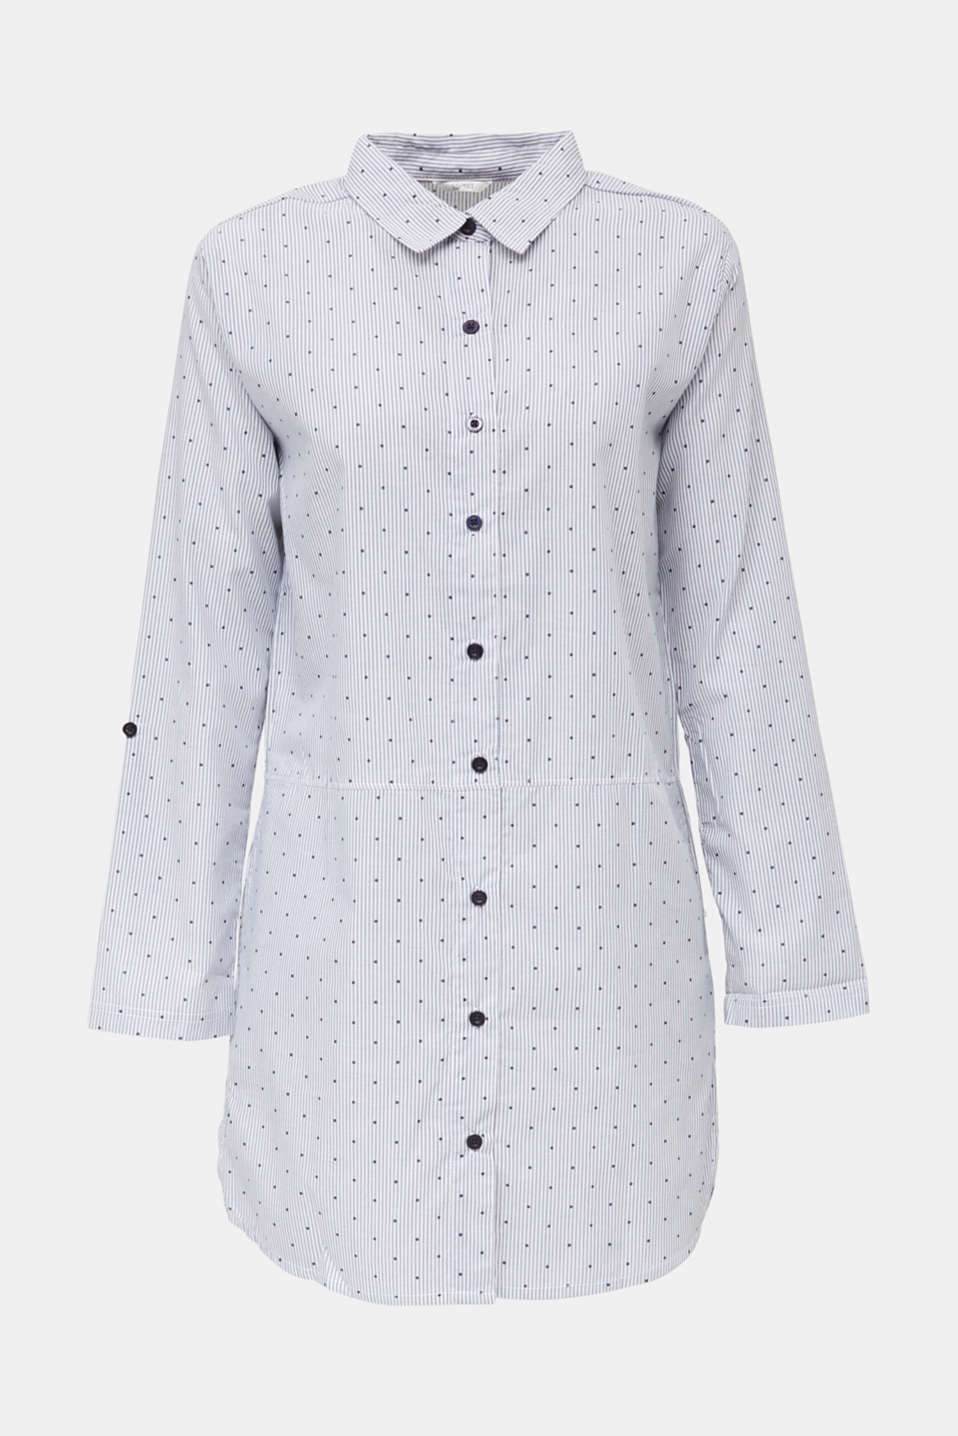 Woven nightshirt made of 100% cotton, BLUE LAVENDER, detail image number 4